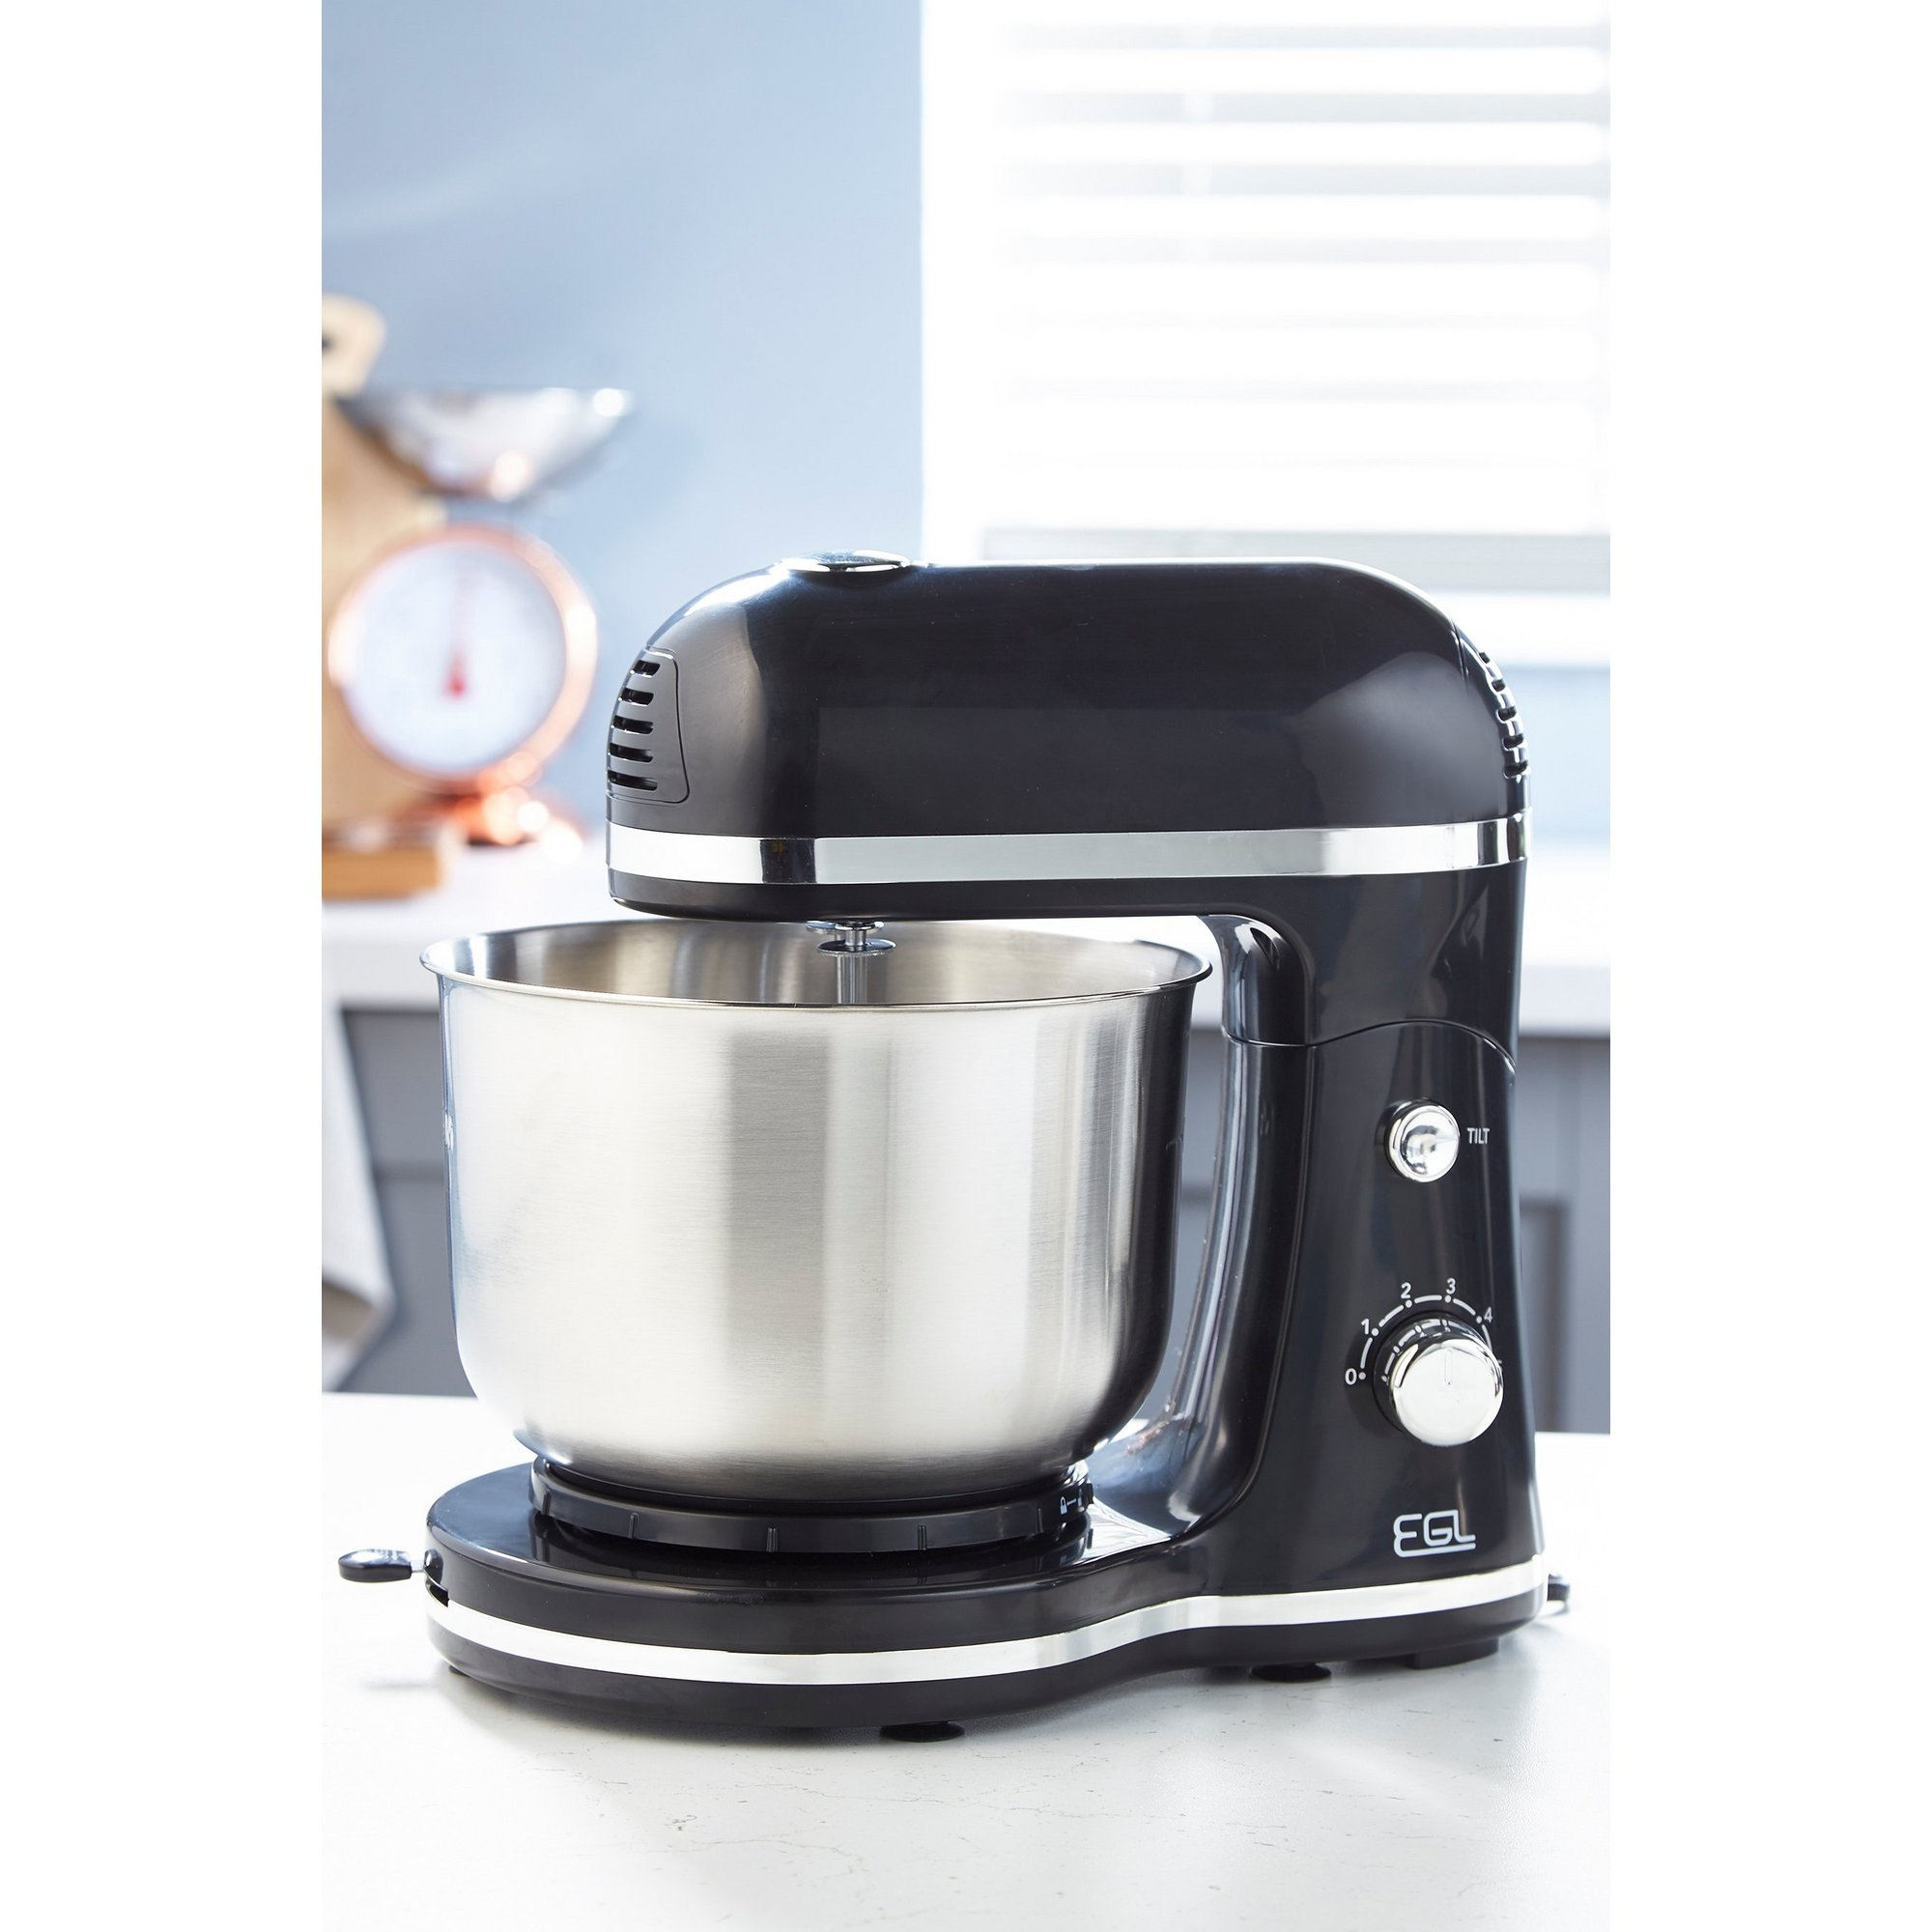 Image of 3.5 Litre Compact Stand Mixer